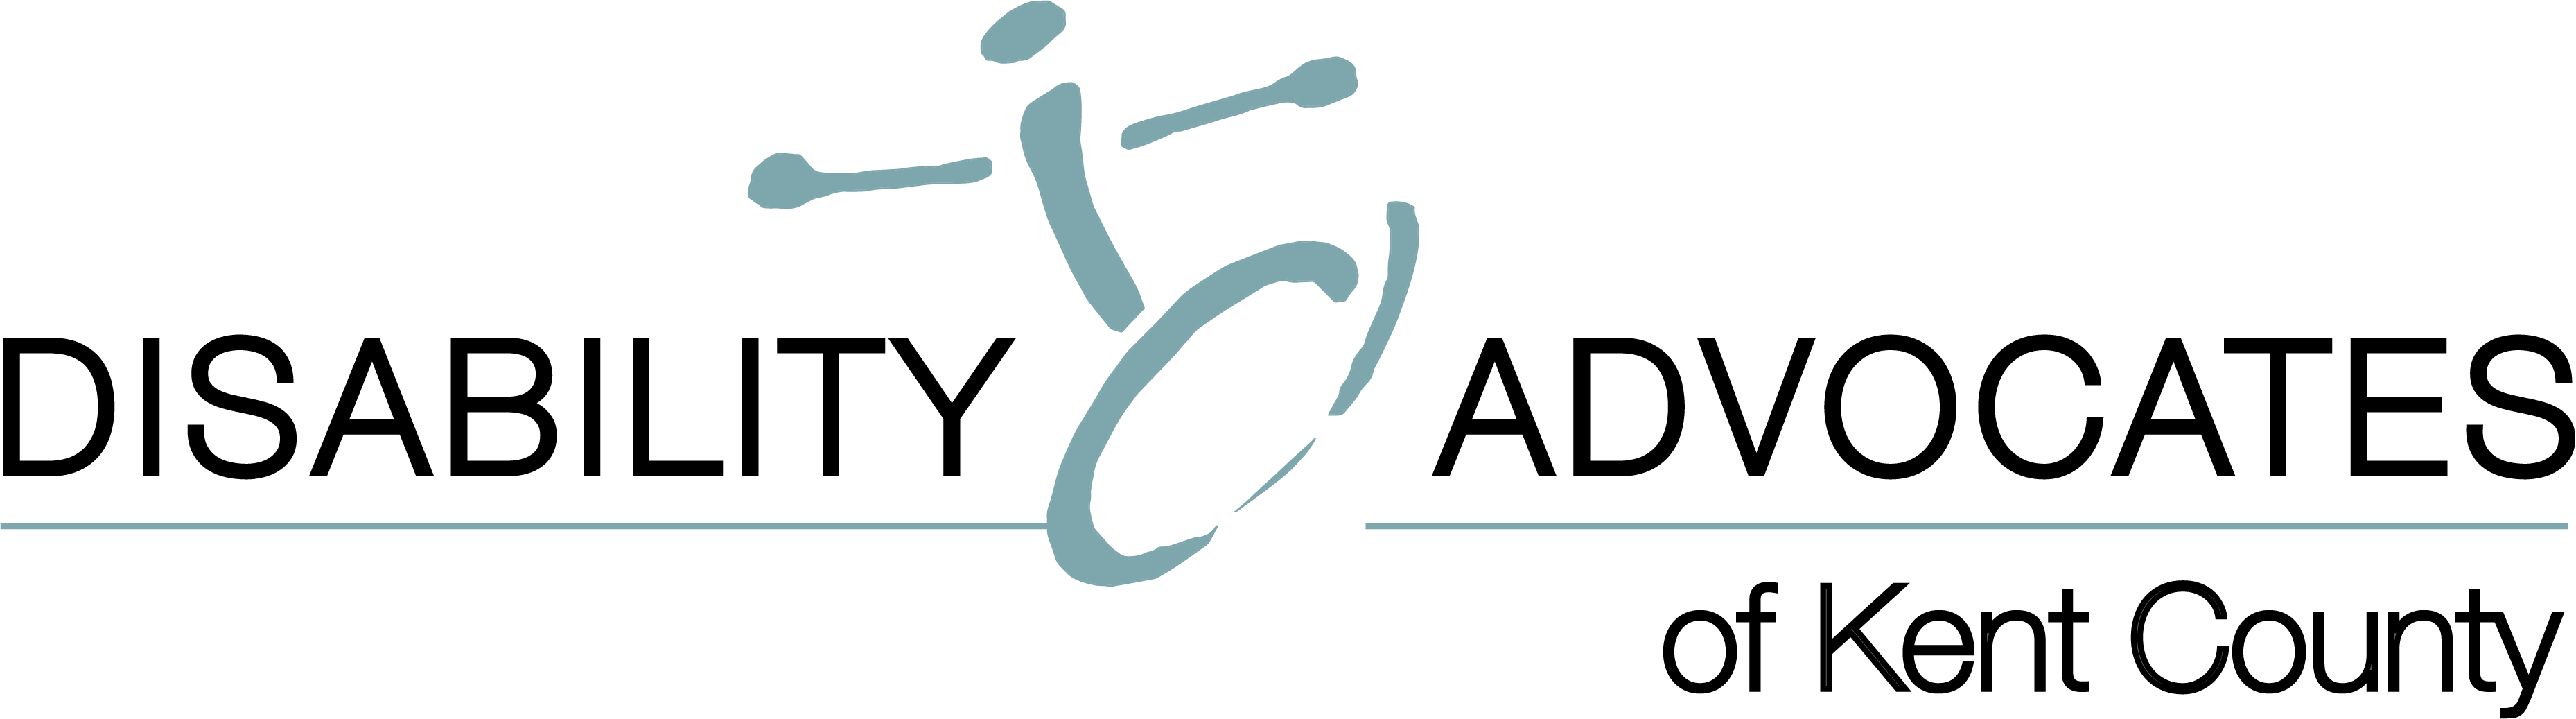 The logo for Disability Advocates of Kent County